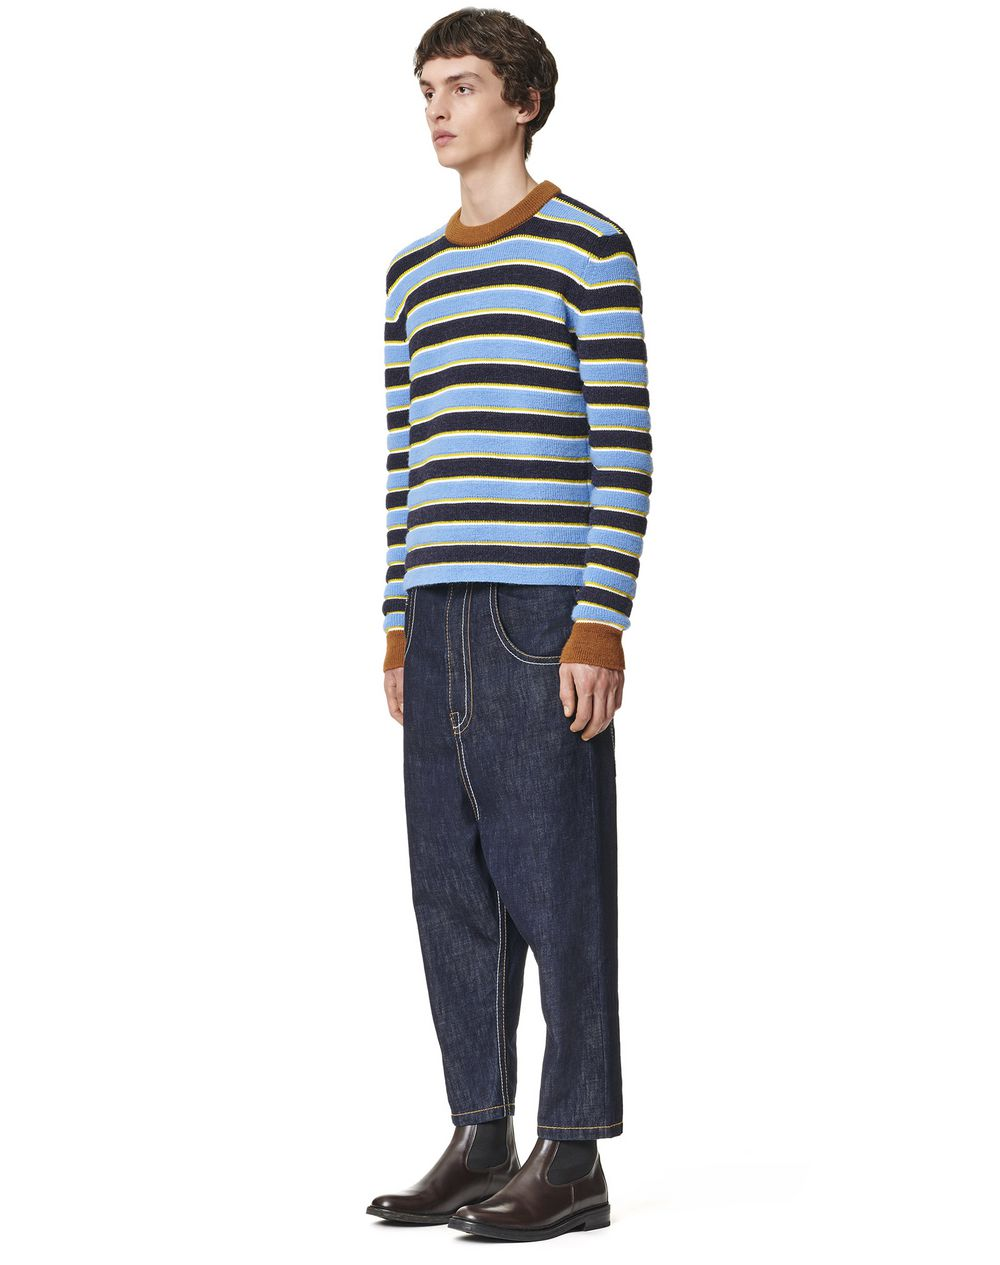 STRIPED KNITTED SWEATER - Lanvin